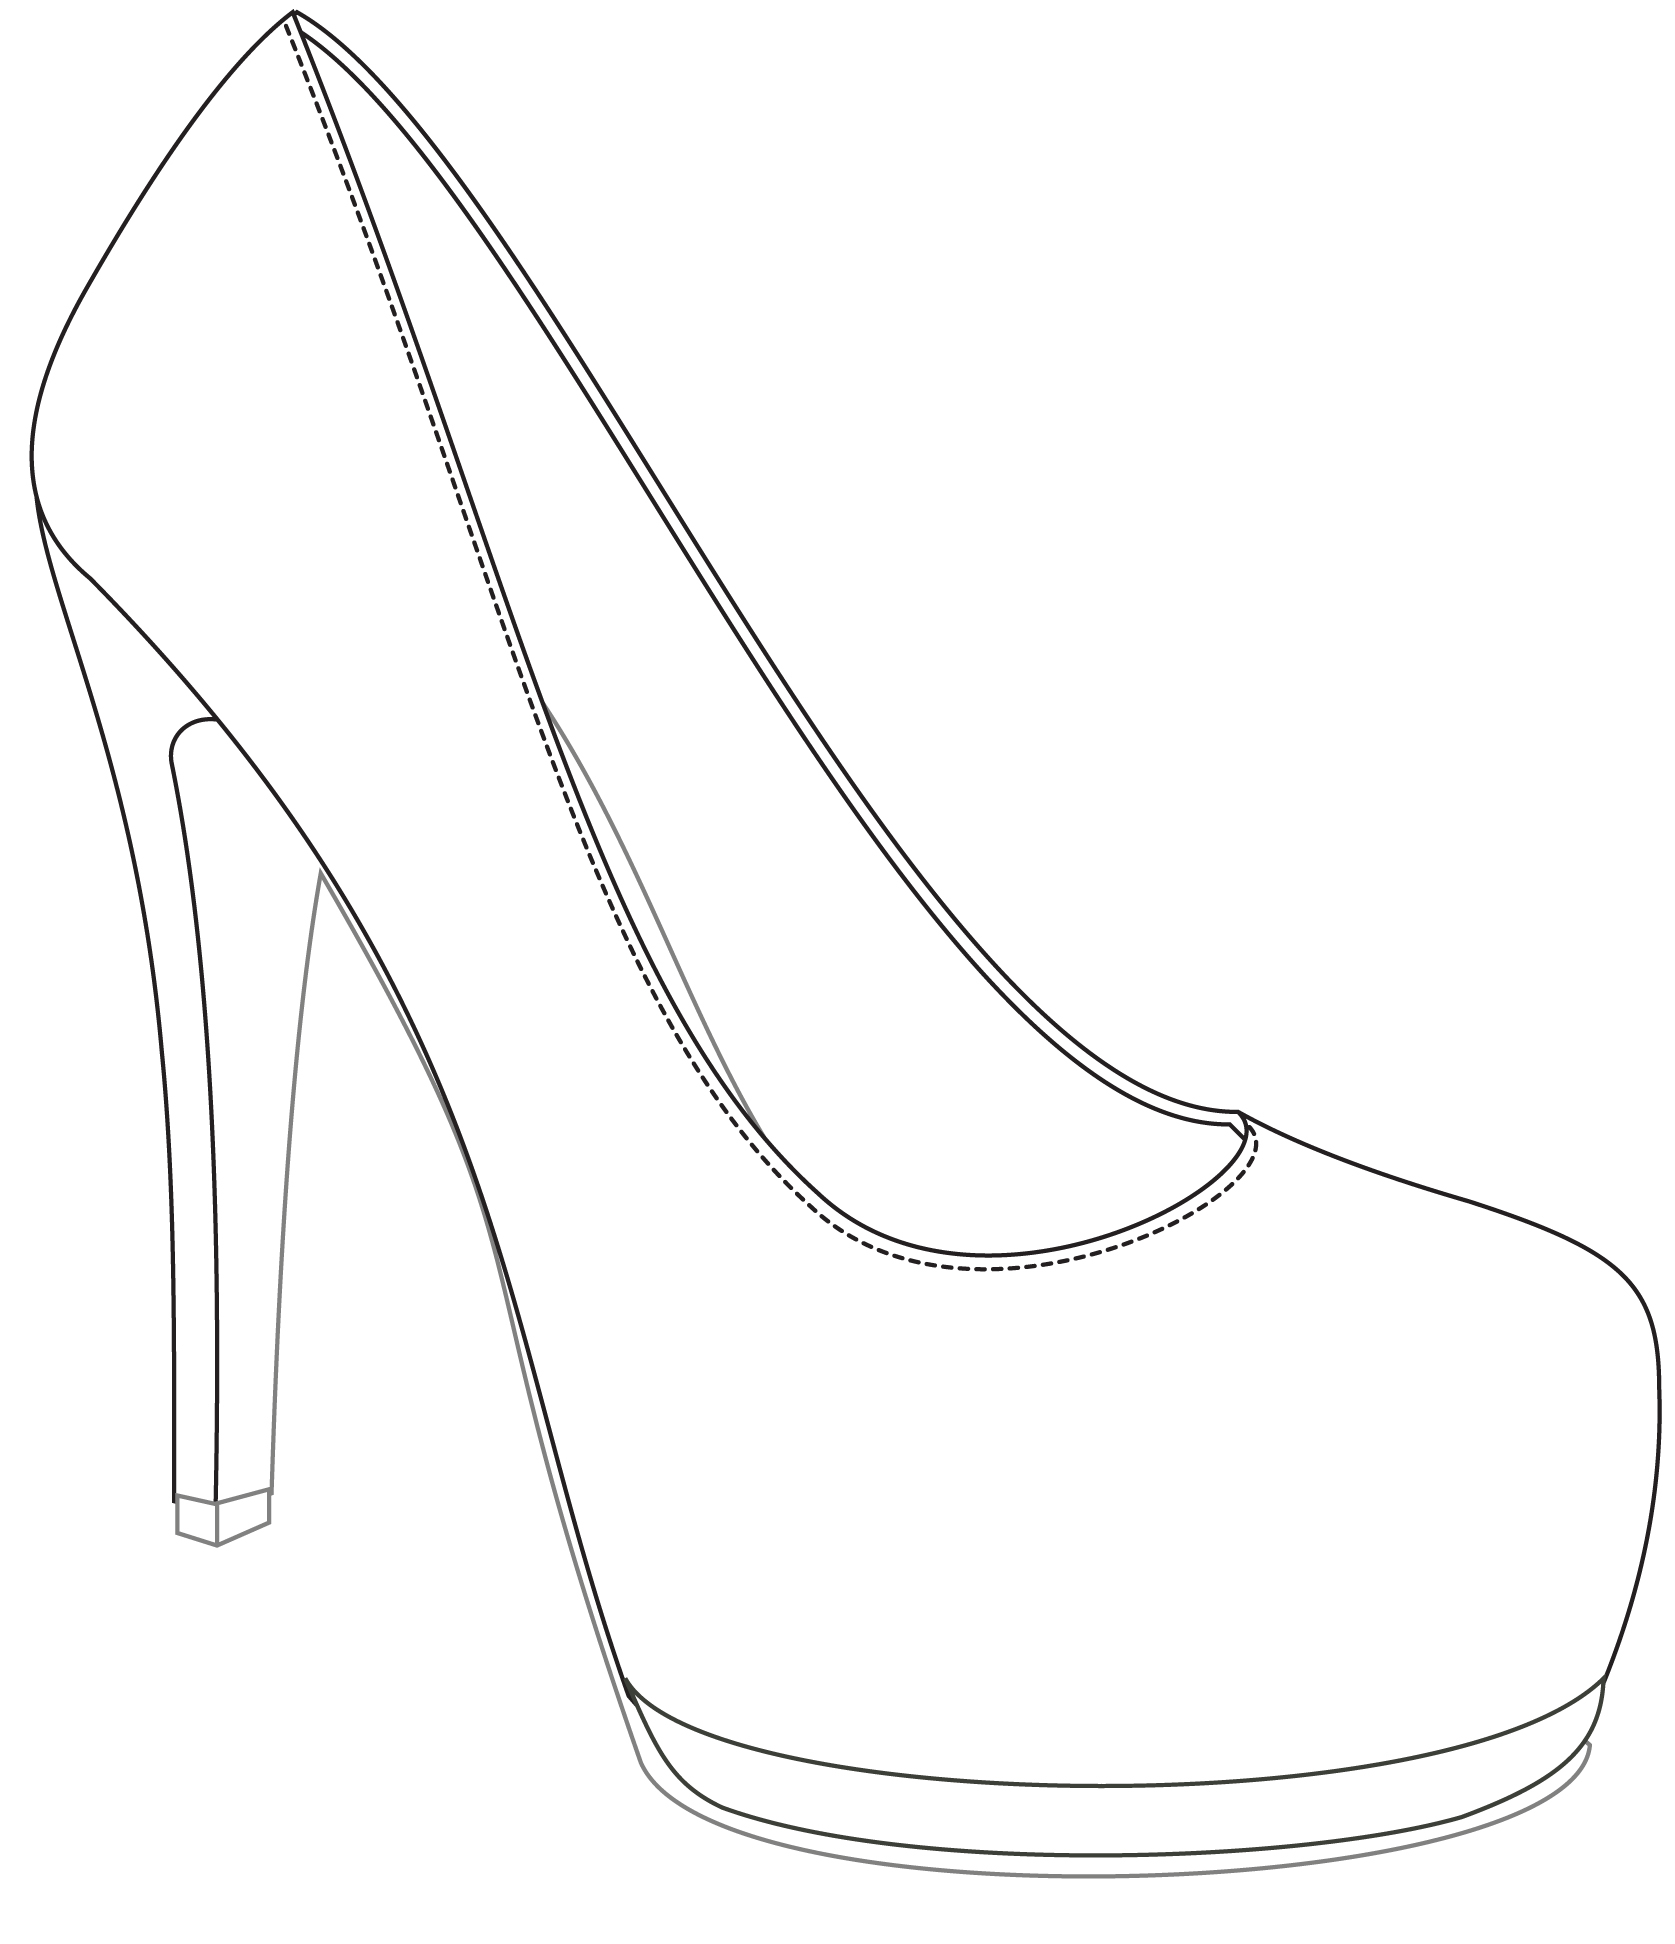 Shoes Design Drawing At Getdrawings